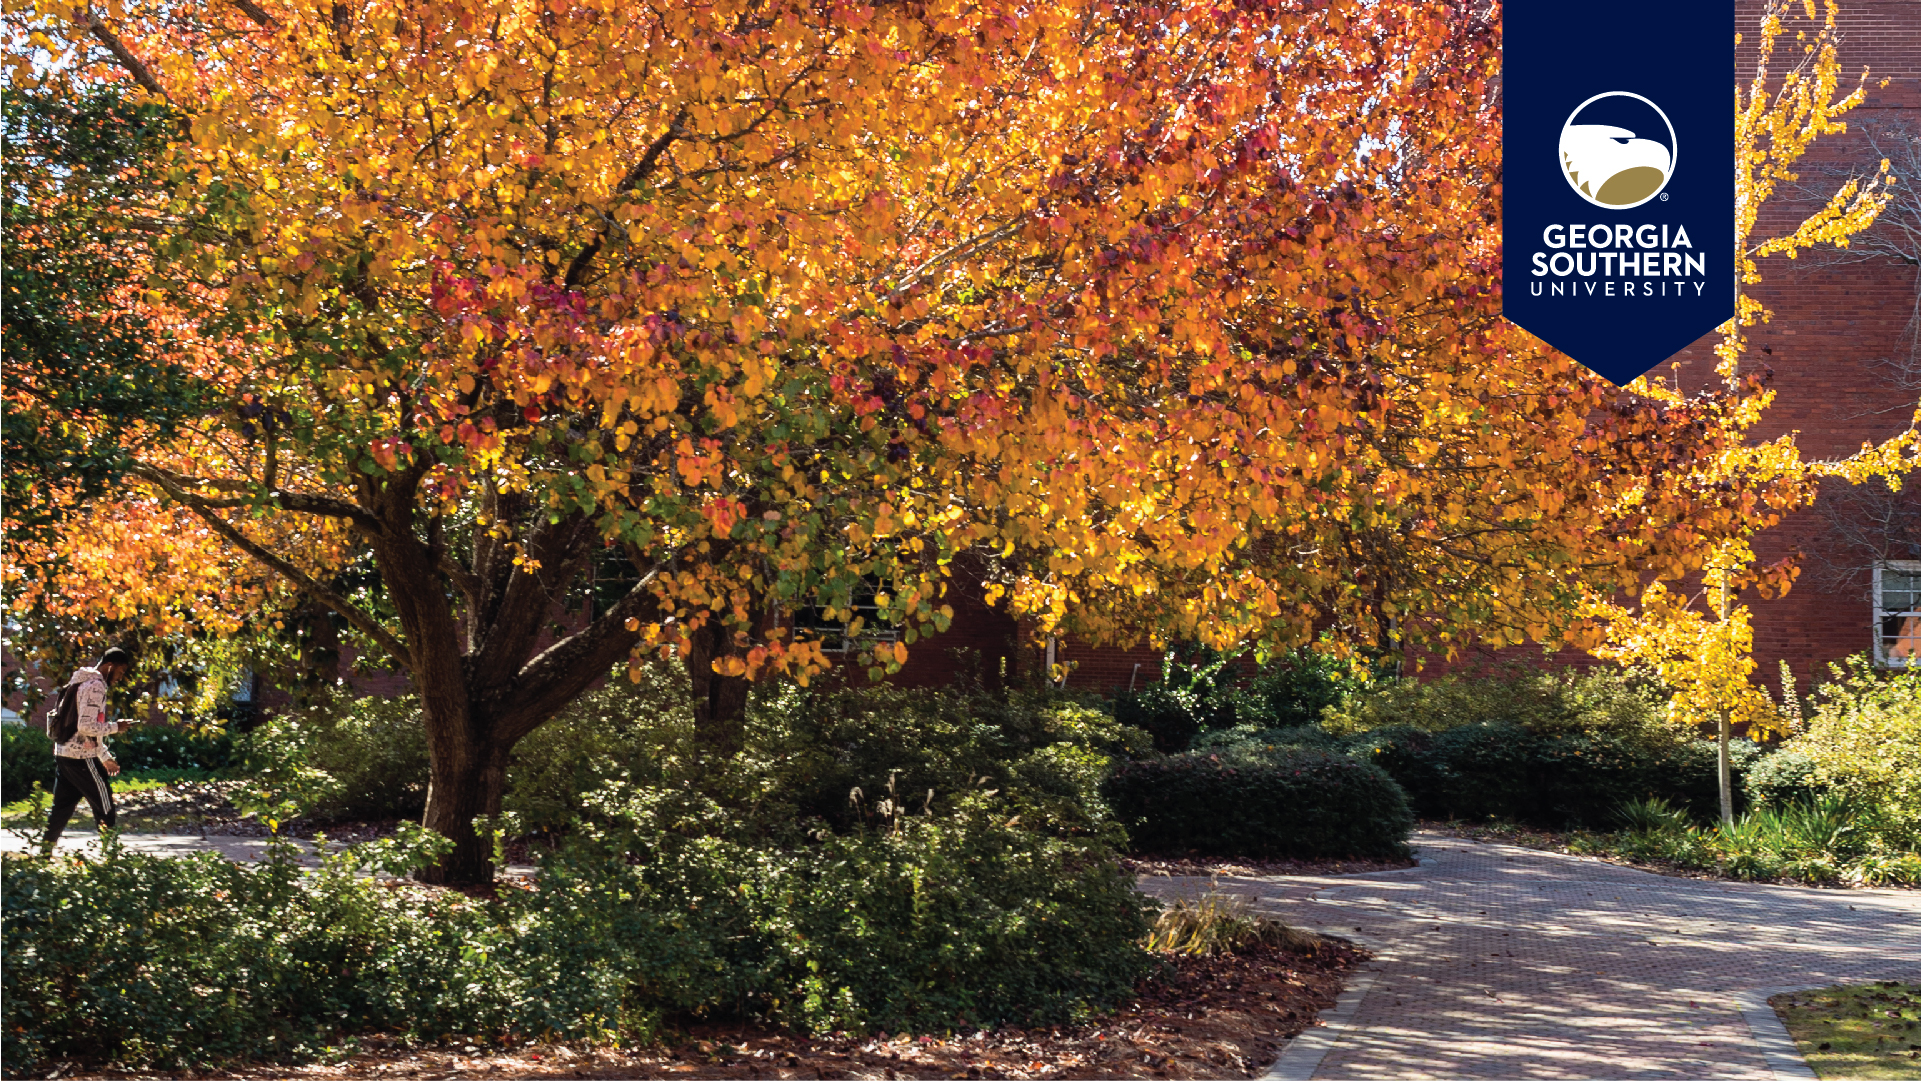 download a zoom background of a large tree with Autumn foliage